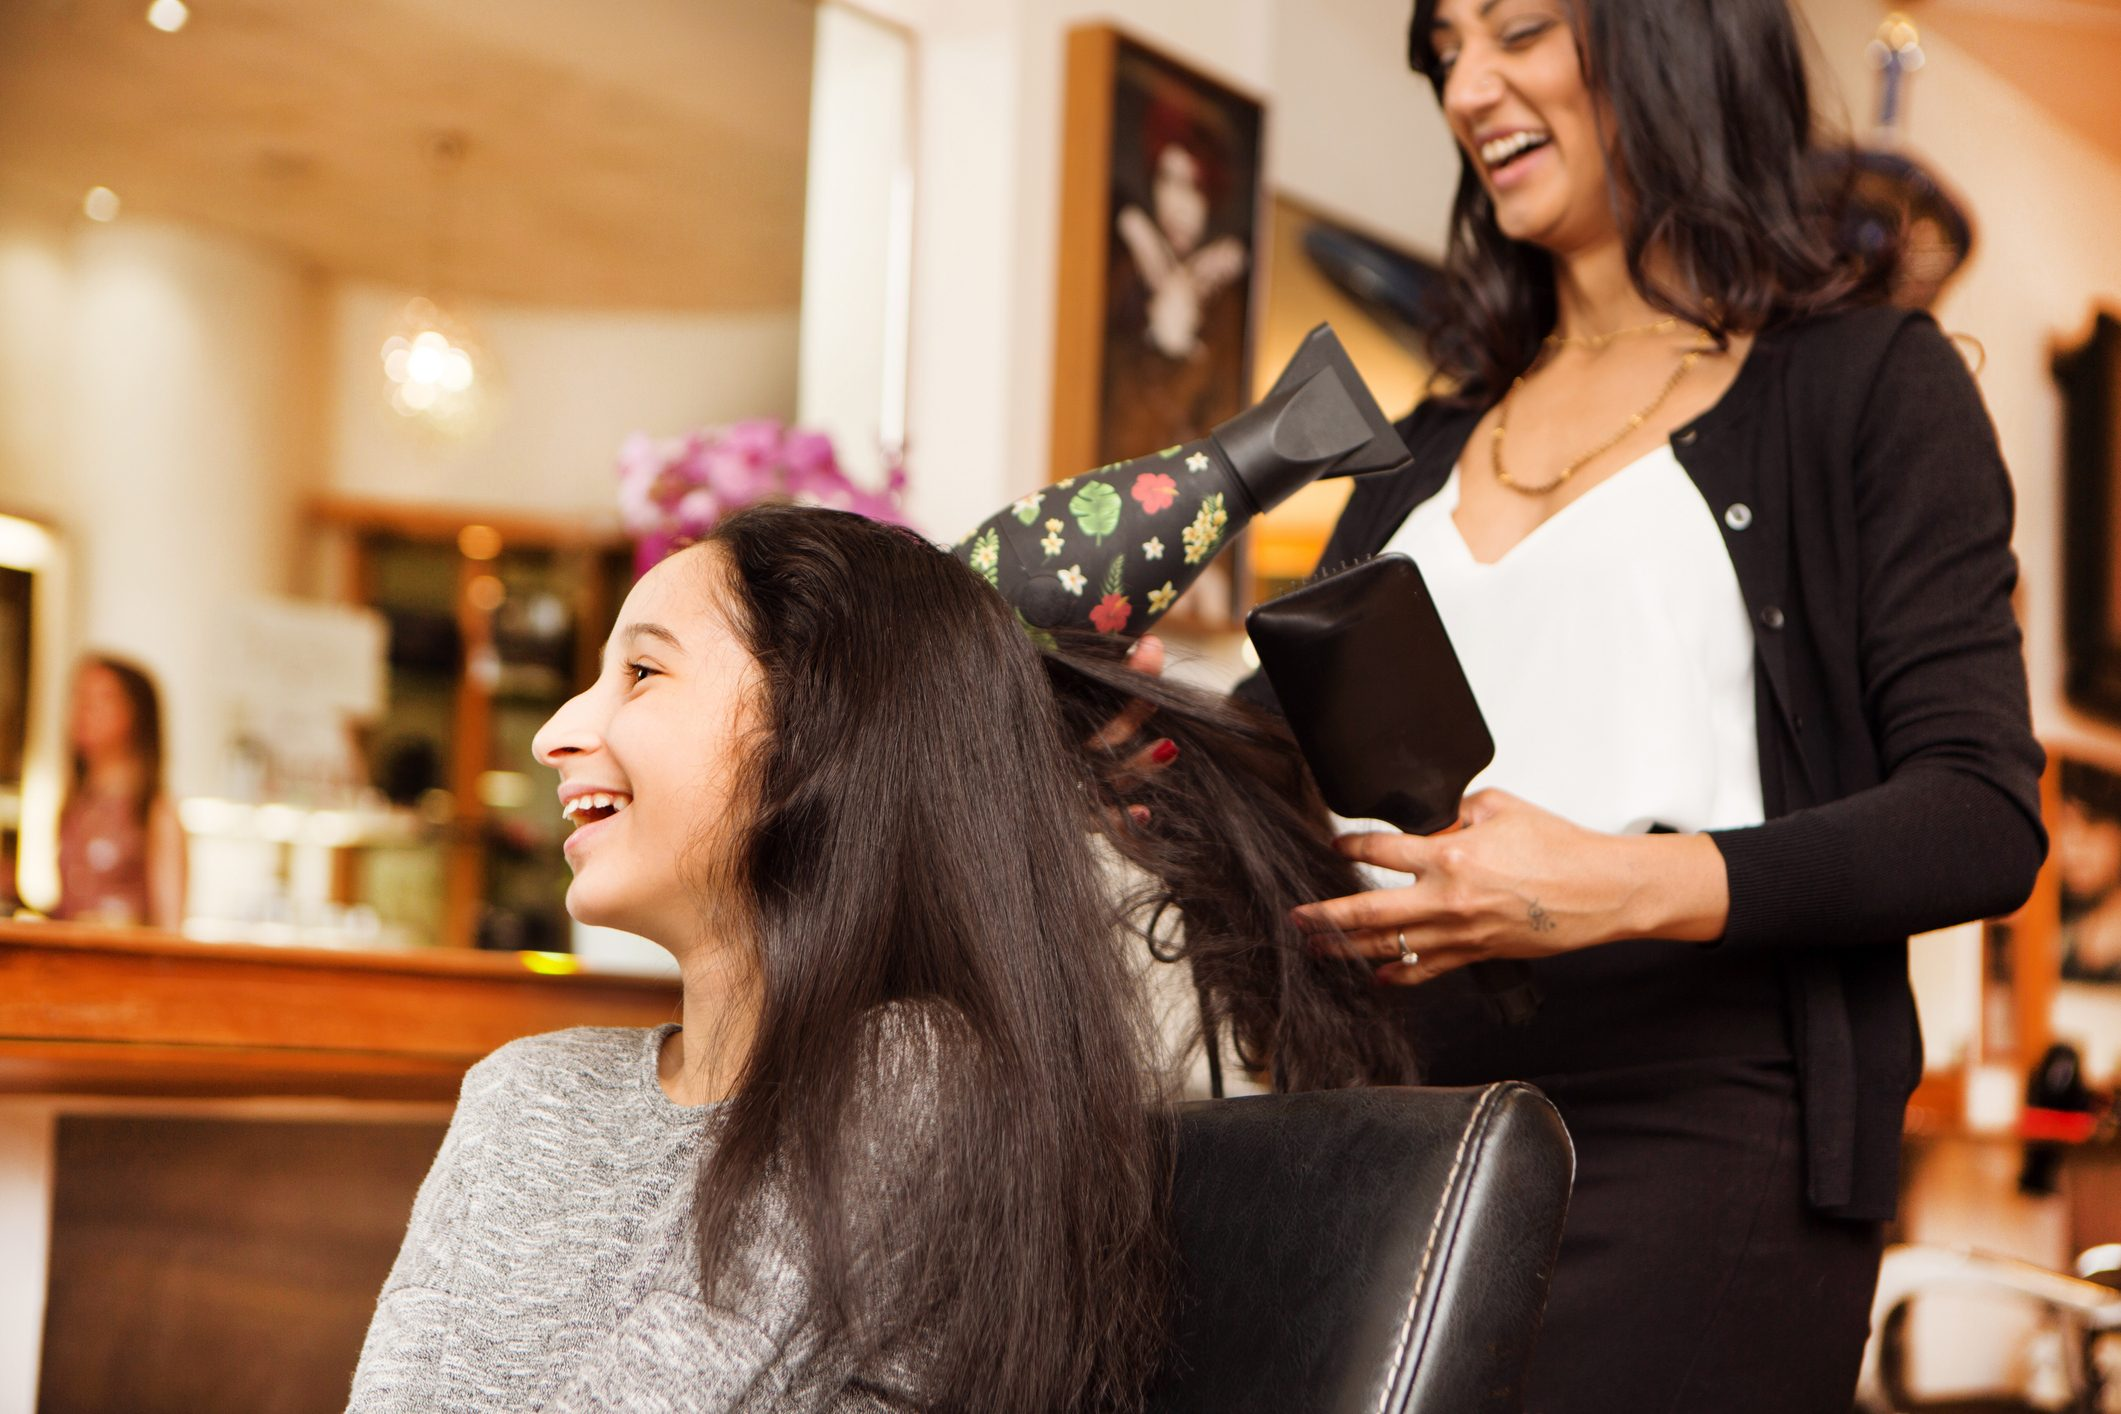 Hairdresser and girl laughing while having blow dry in hair salon